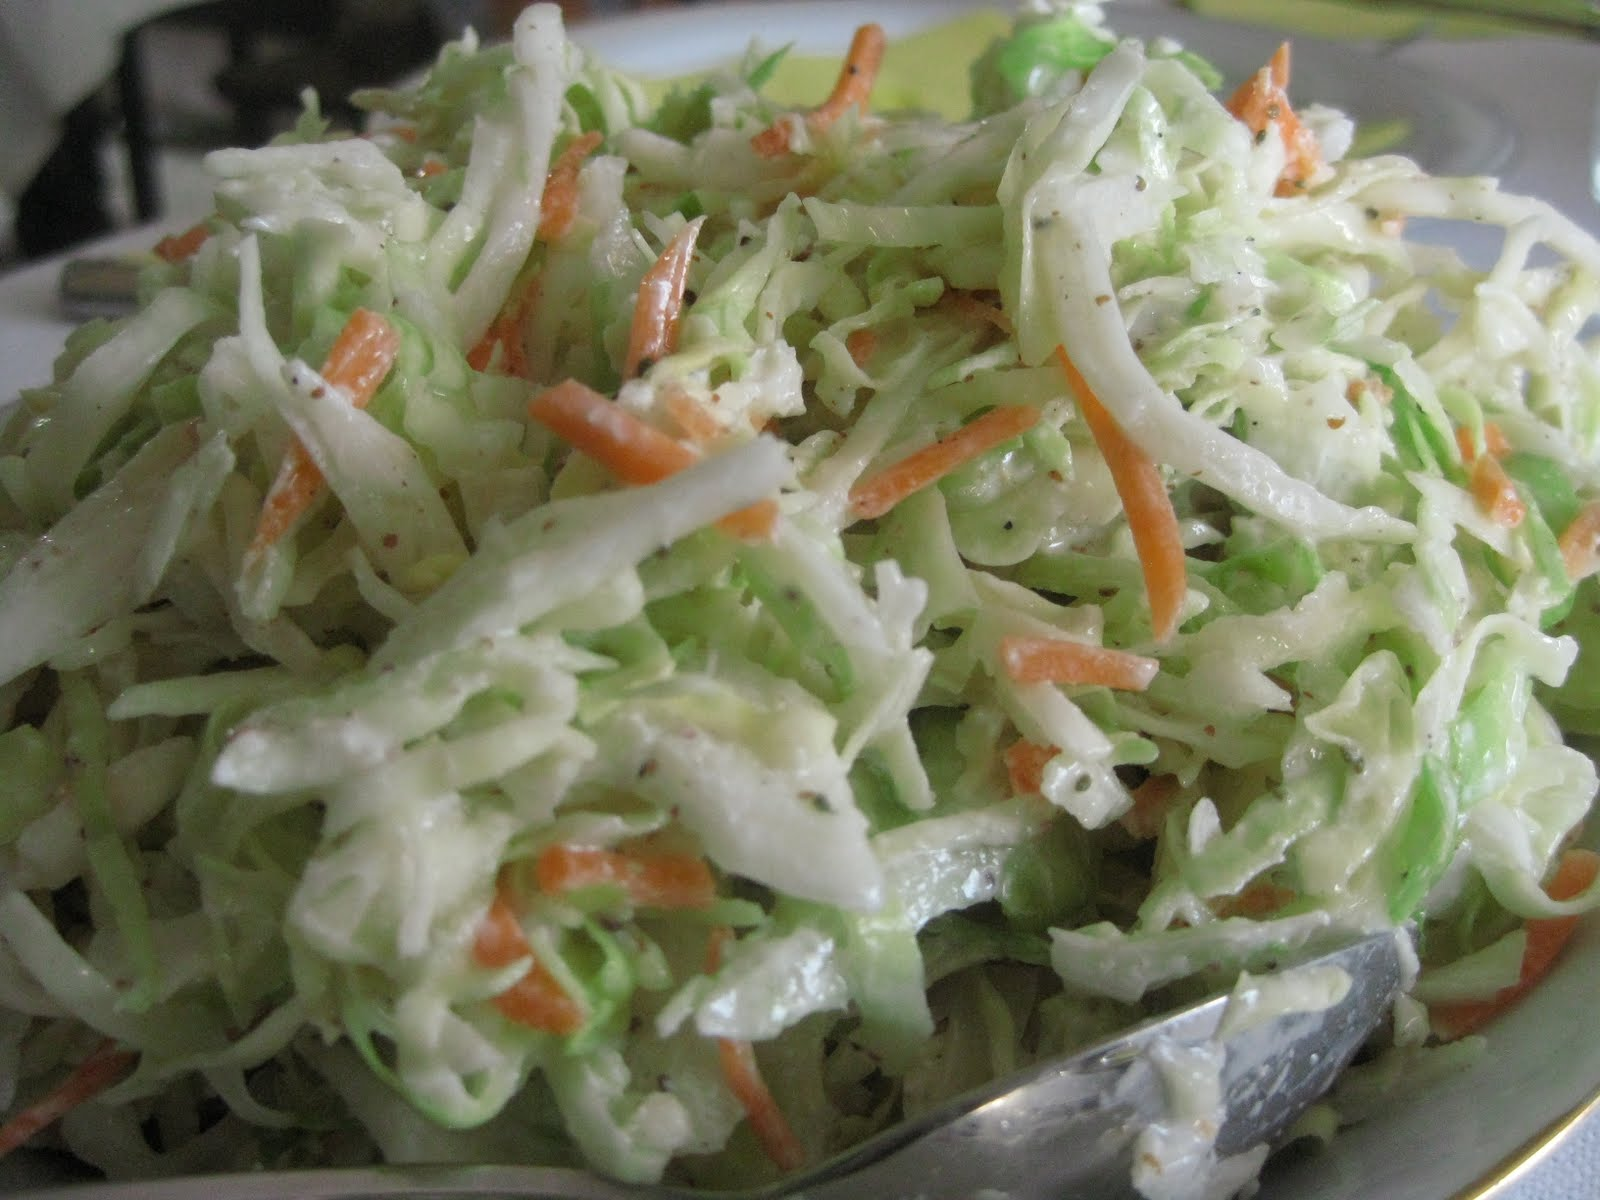 Andrea The Kitchen Witch: Coleslaw